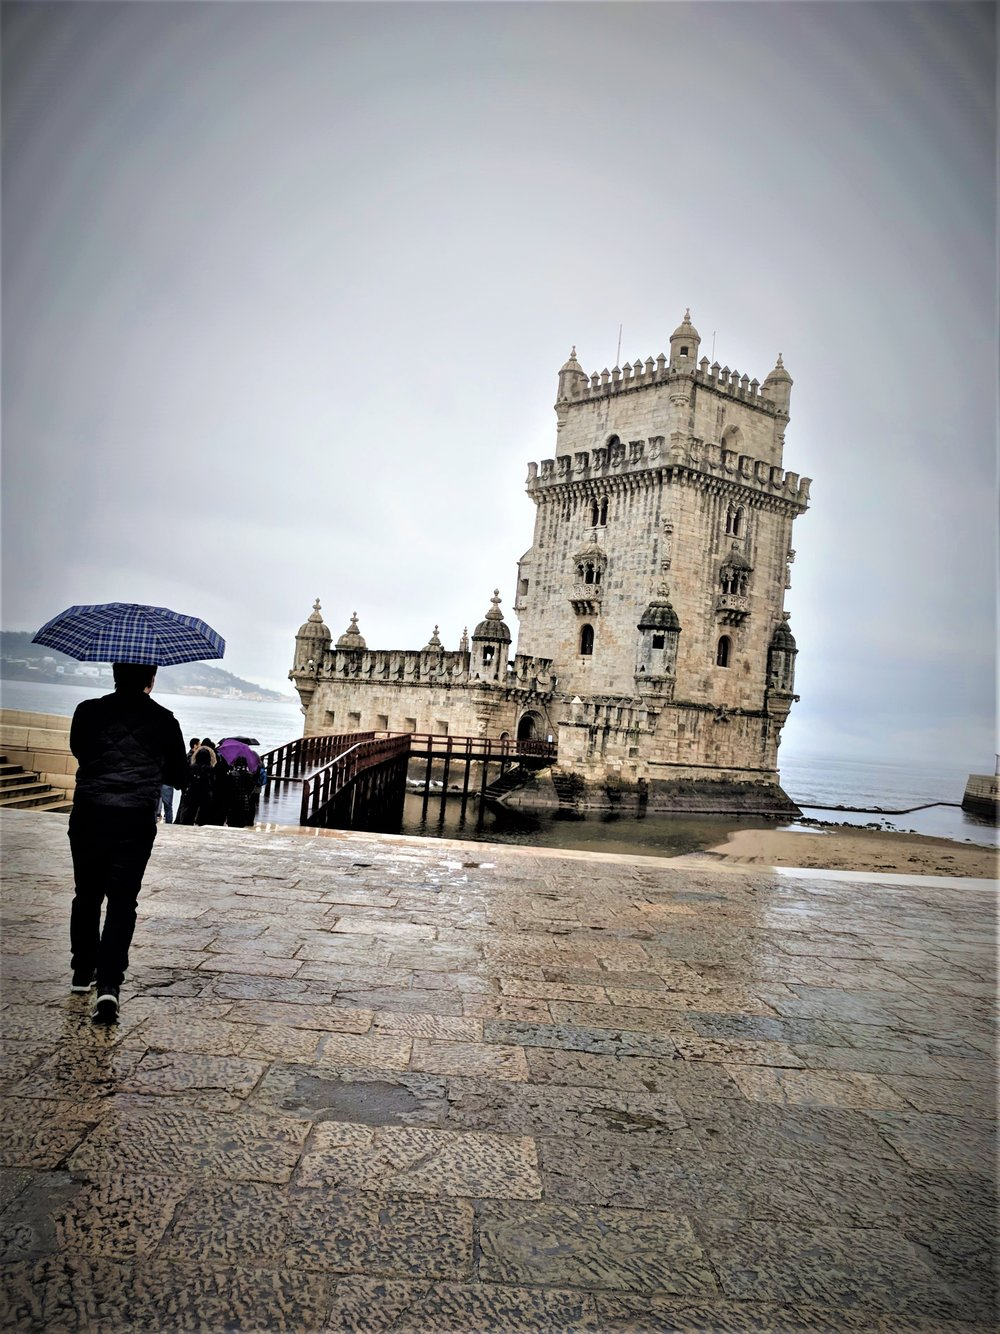 The Gloomy Tower of Belem